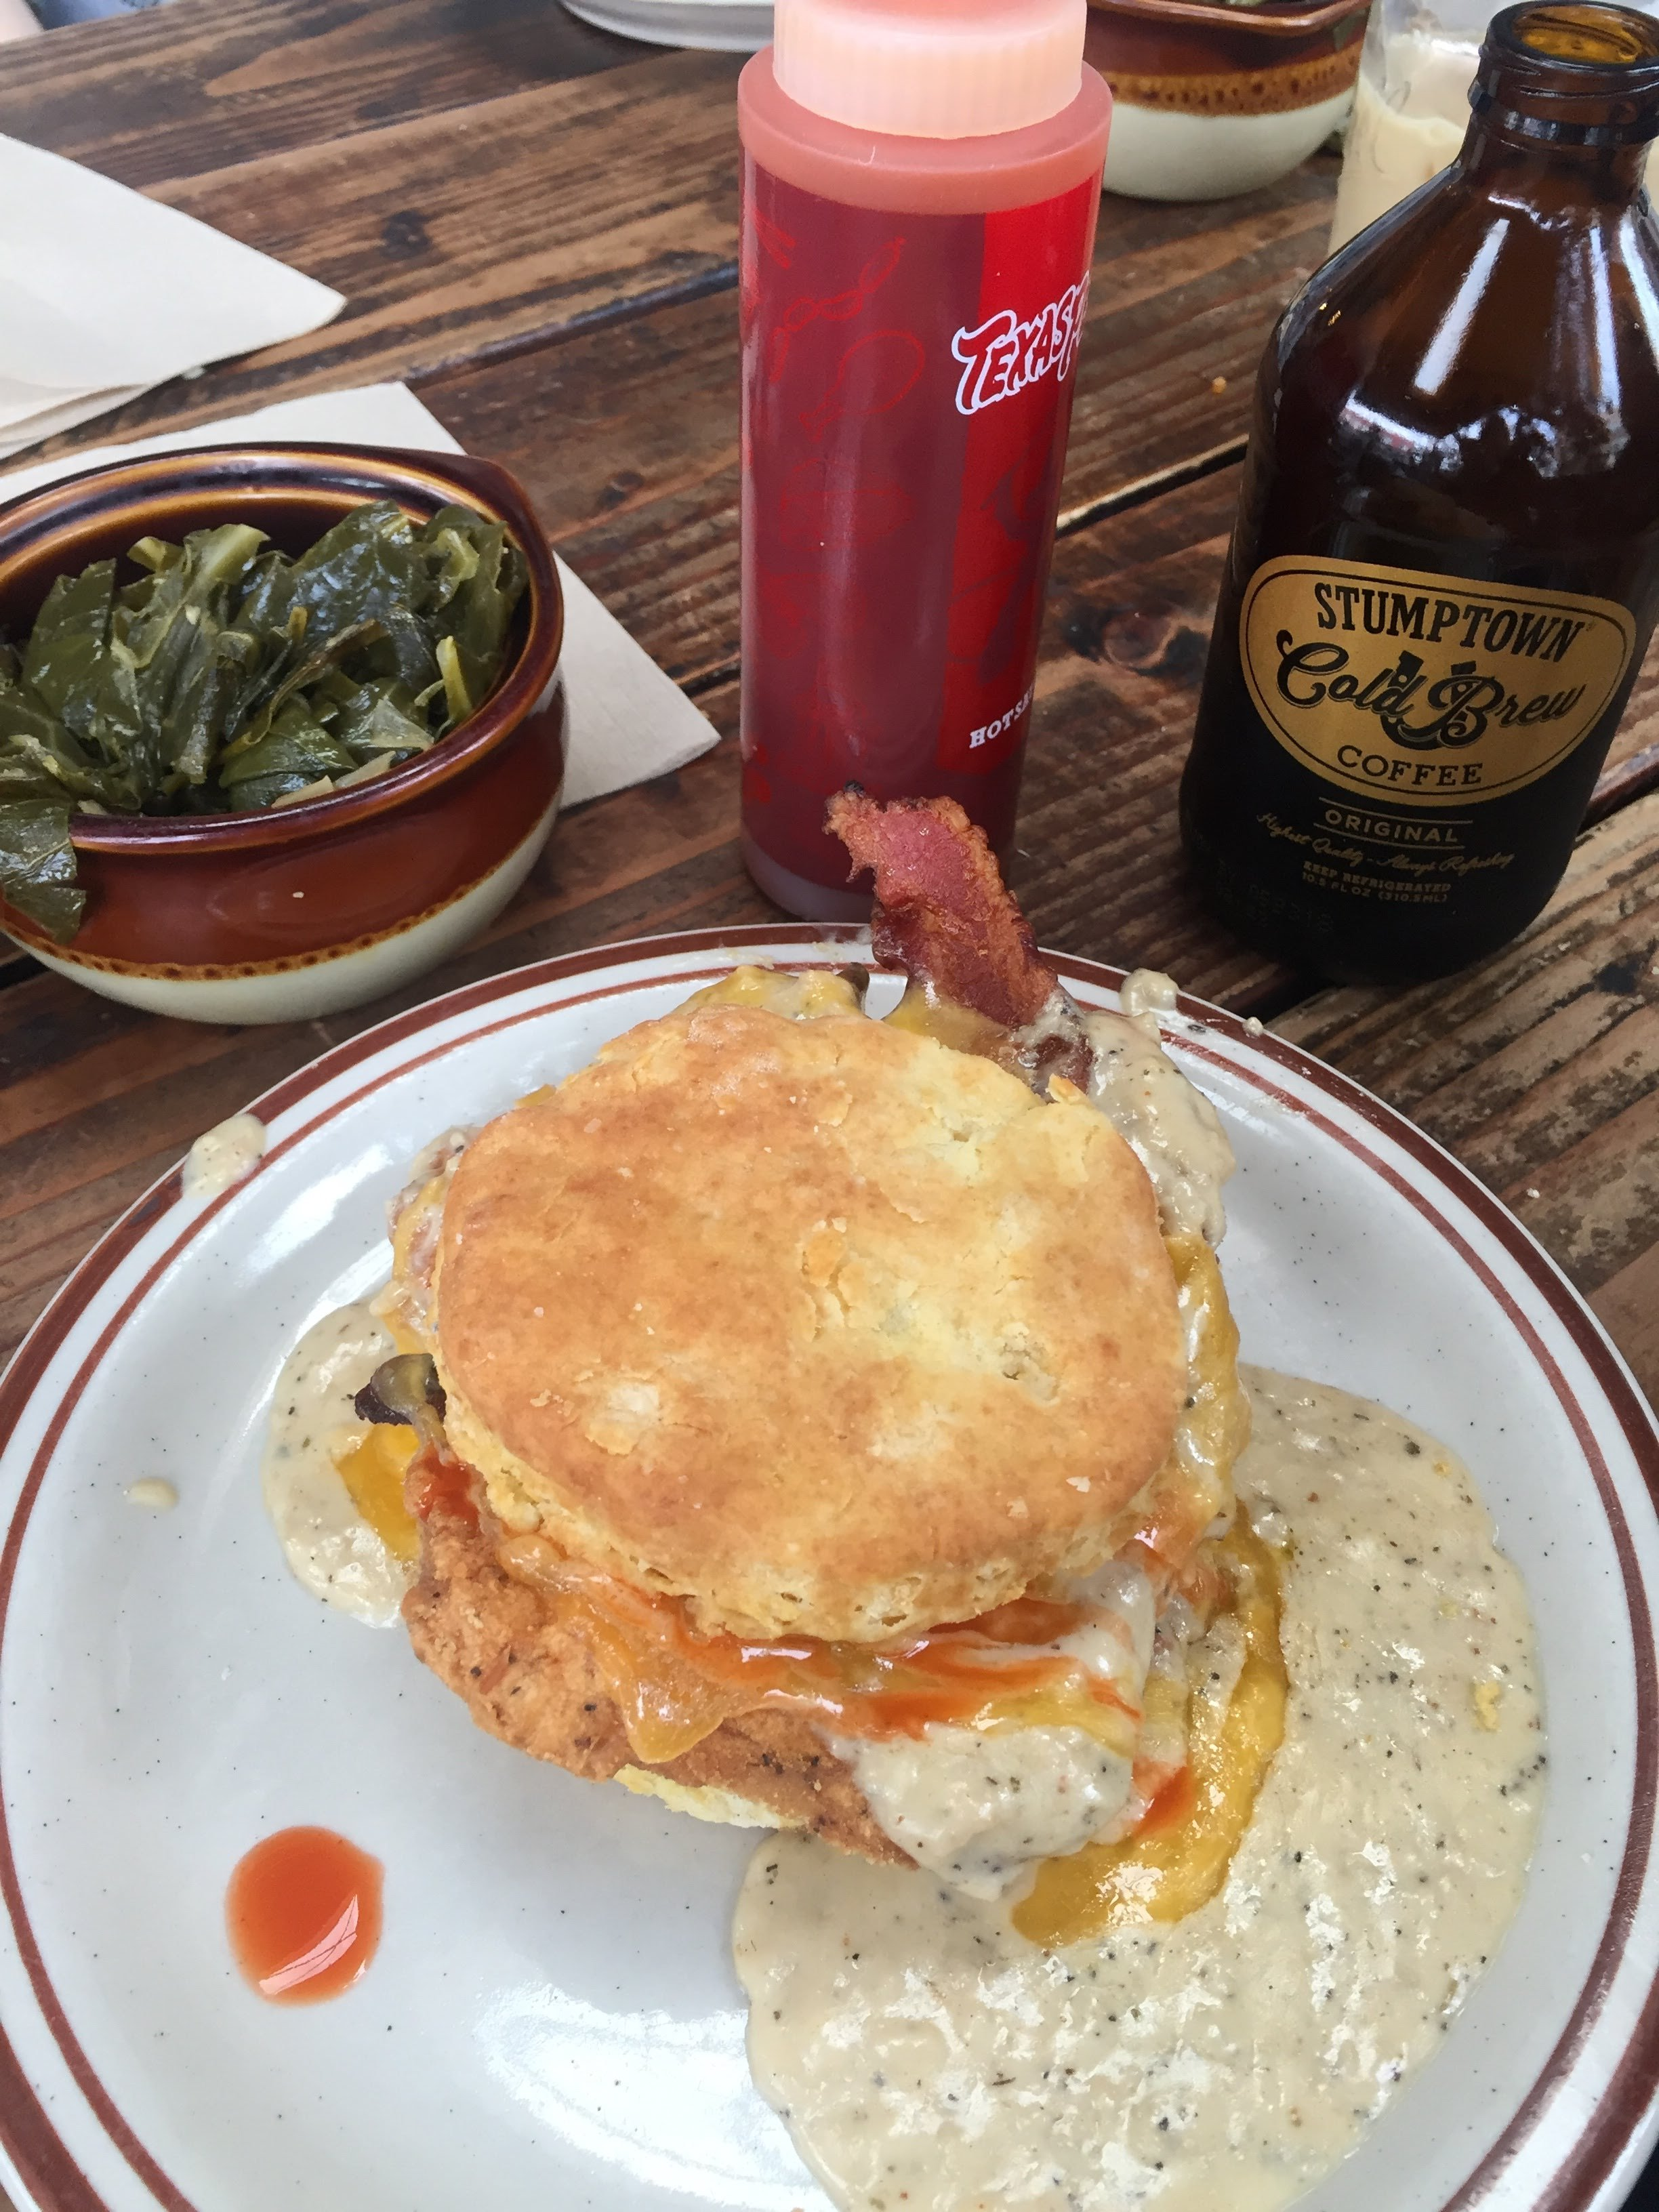 biscuit sandwich from Pine State Biscuits